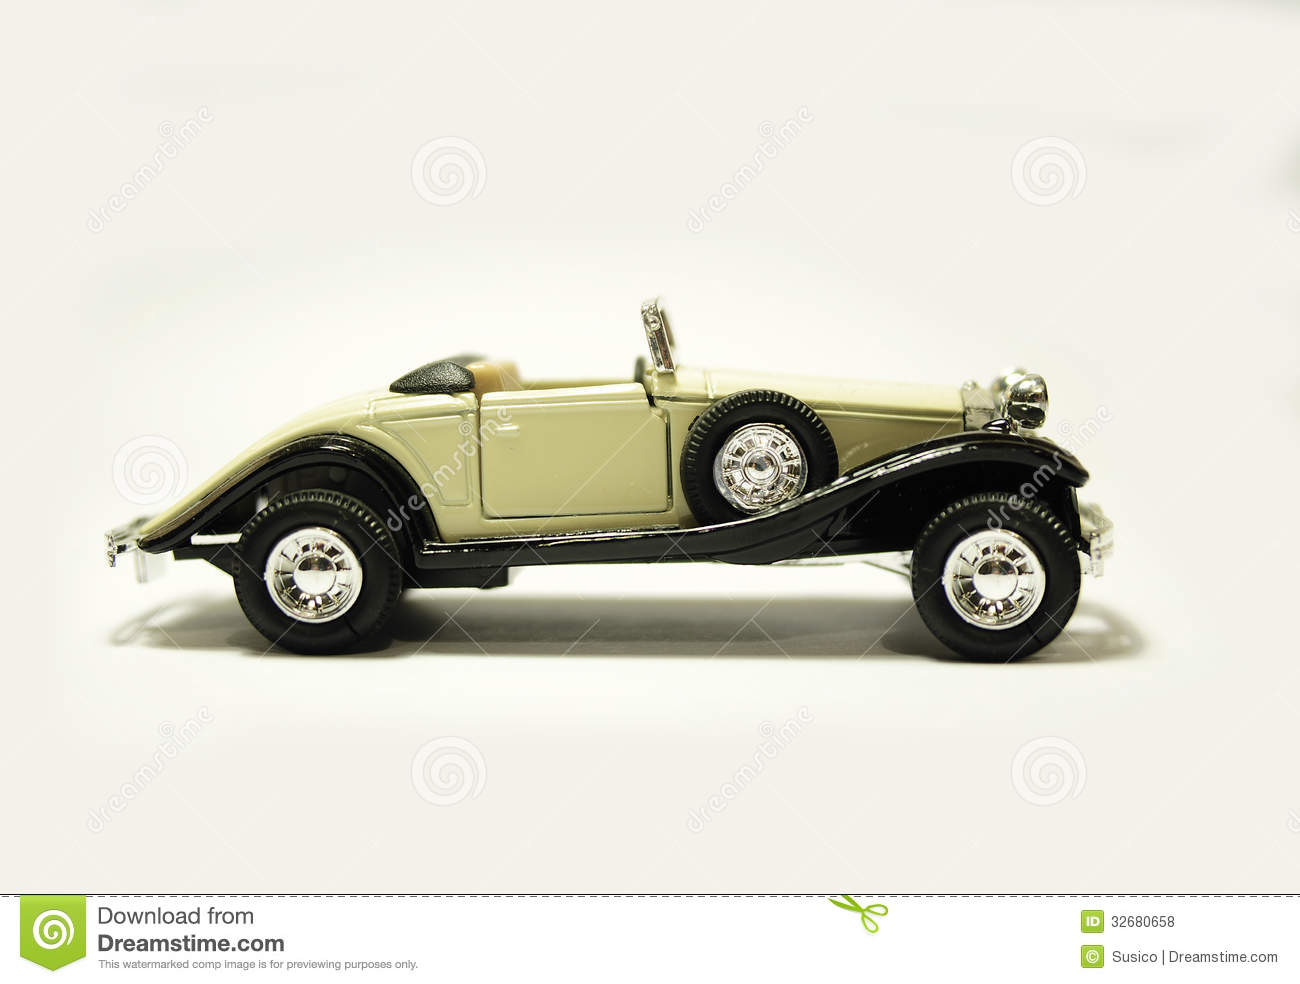 Old retro model car stock photo. Image of fashioned, antique ...